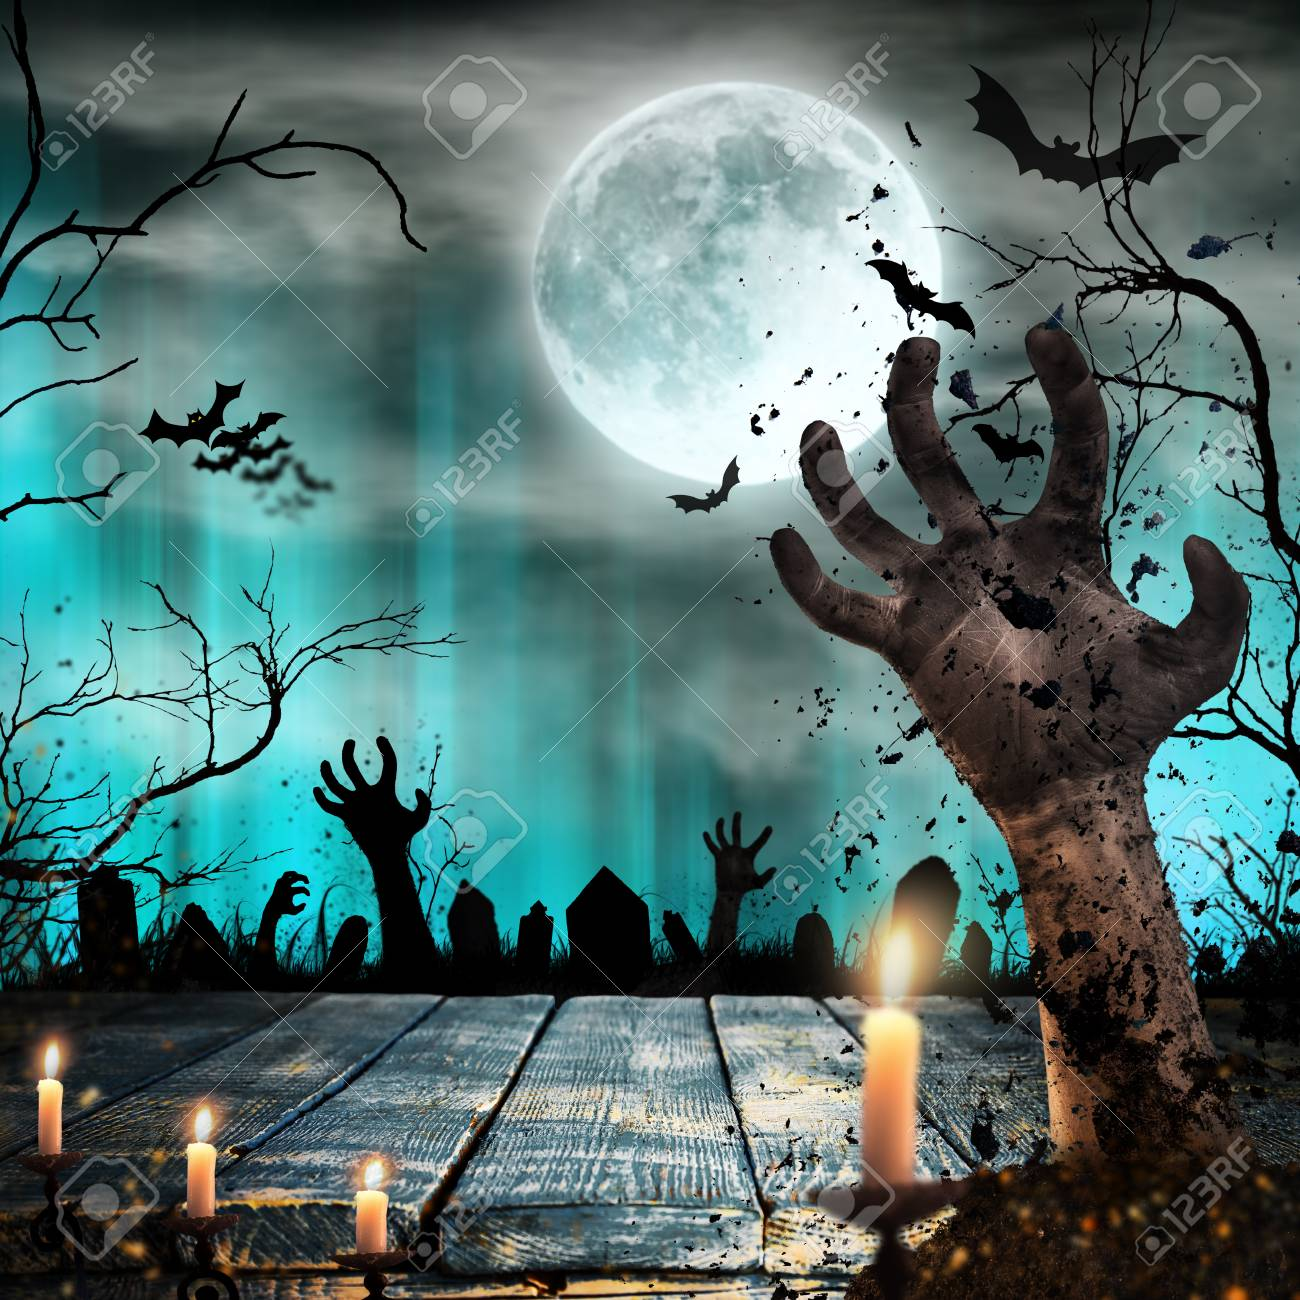 1300x1300 - Scary Halloween Background 17